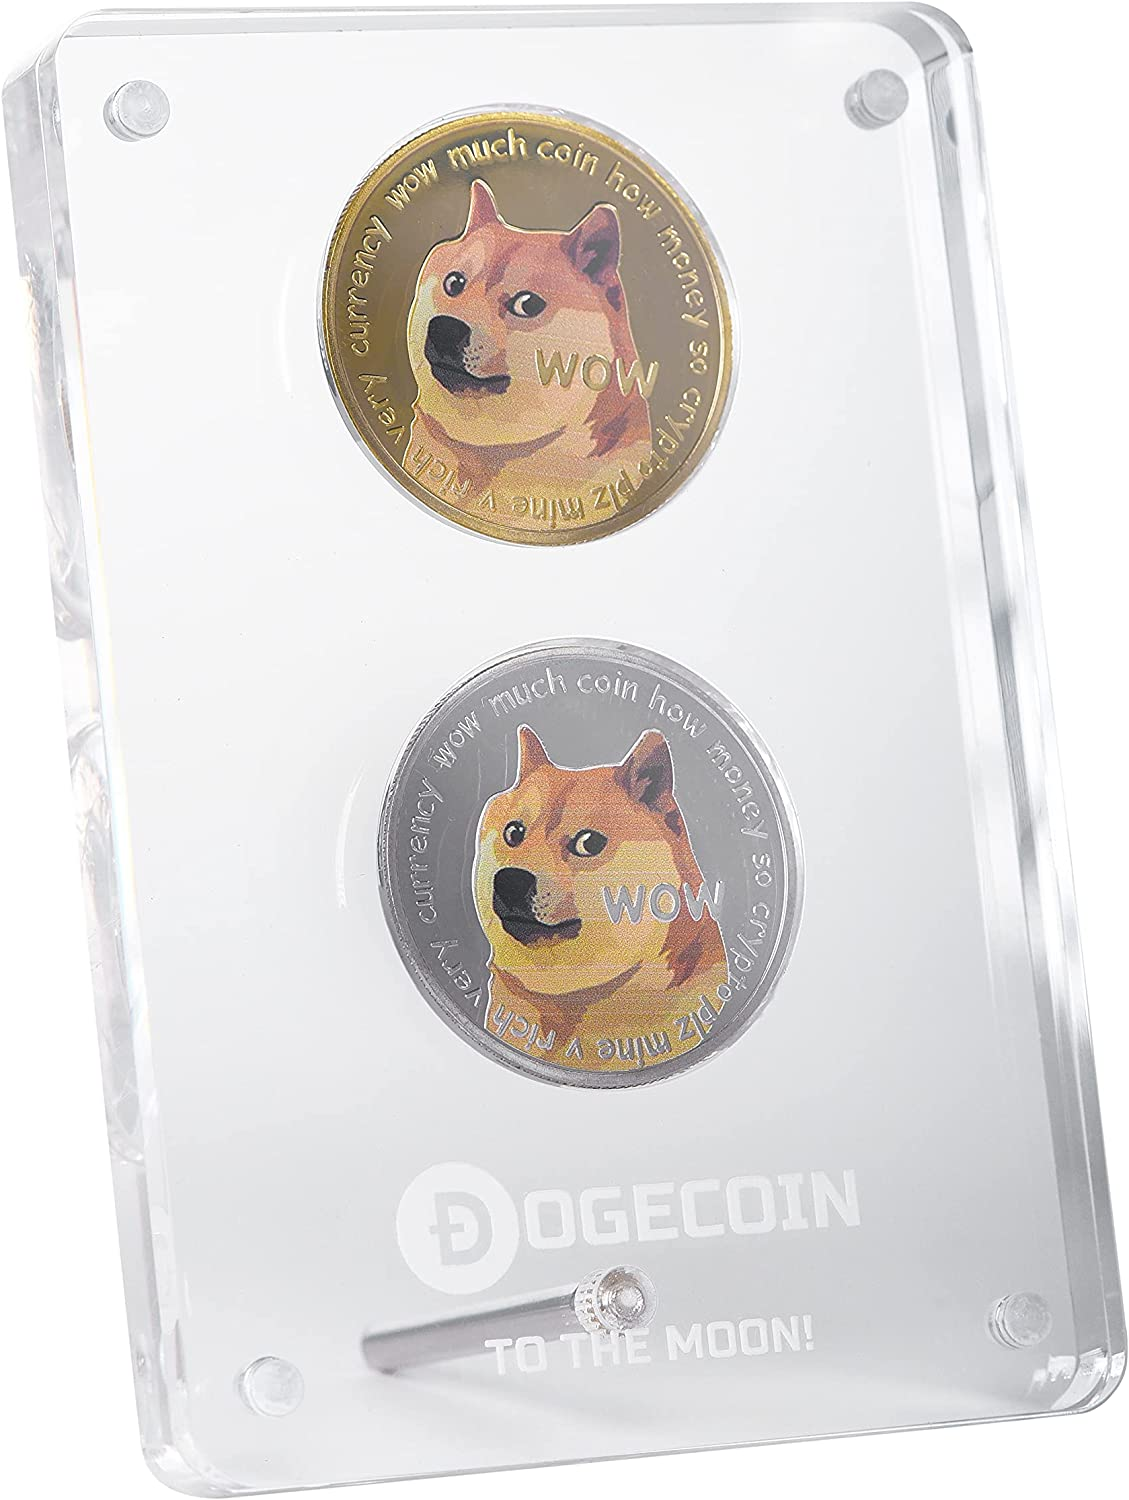 Tapeera Physical Dogecoin Coin with Acrylic Magnetic Display Case - Silver and Gold Plated Cryptocurrency Coins - Shiba Inu Dog - Doge Coin Token to The Moon - Commemorative Crypto Coins Gifts (2 Pcs)